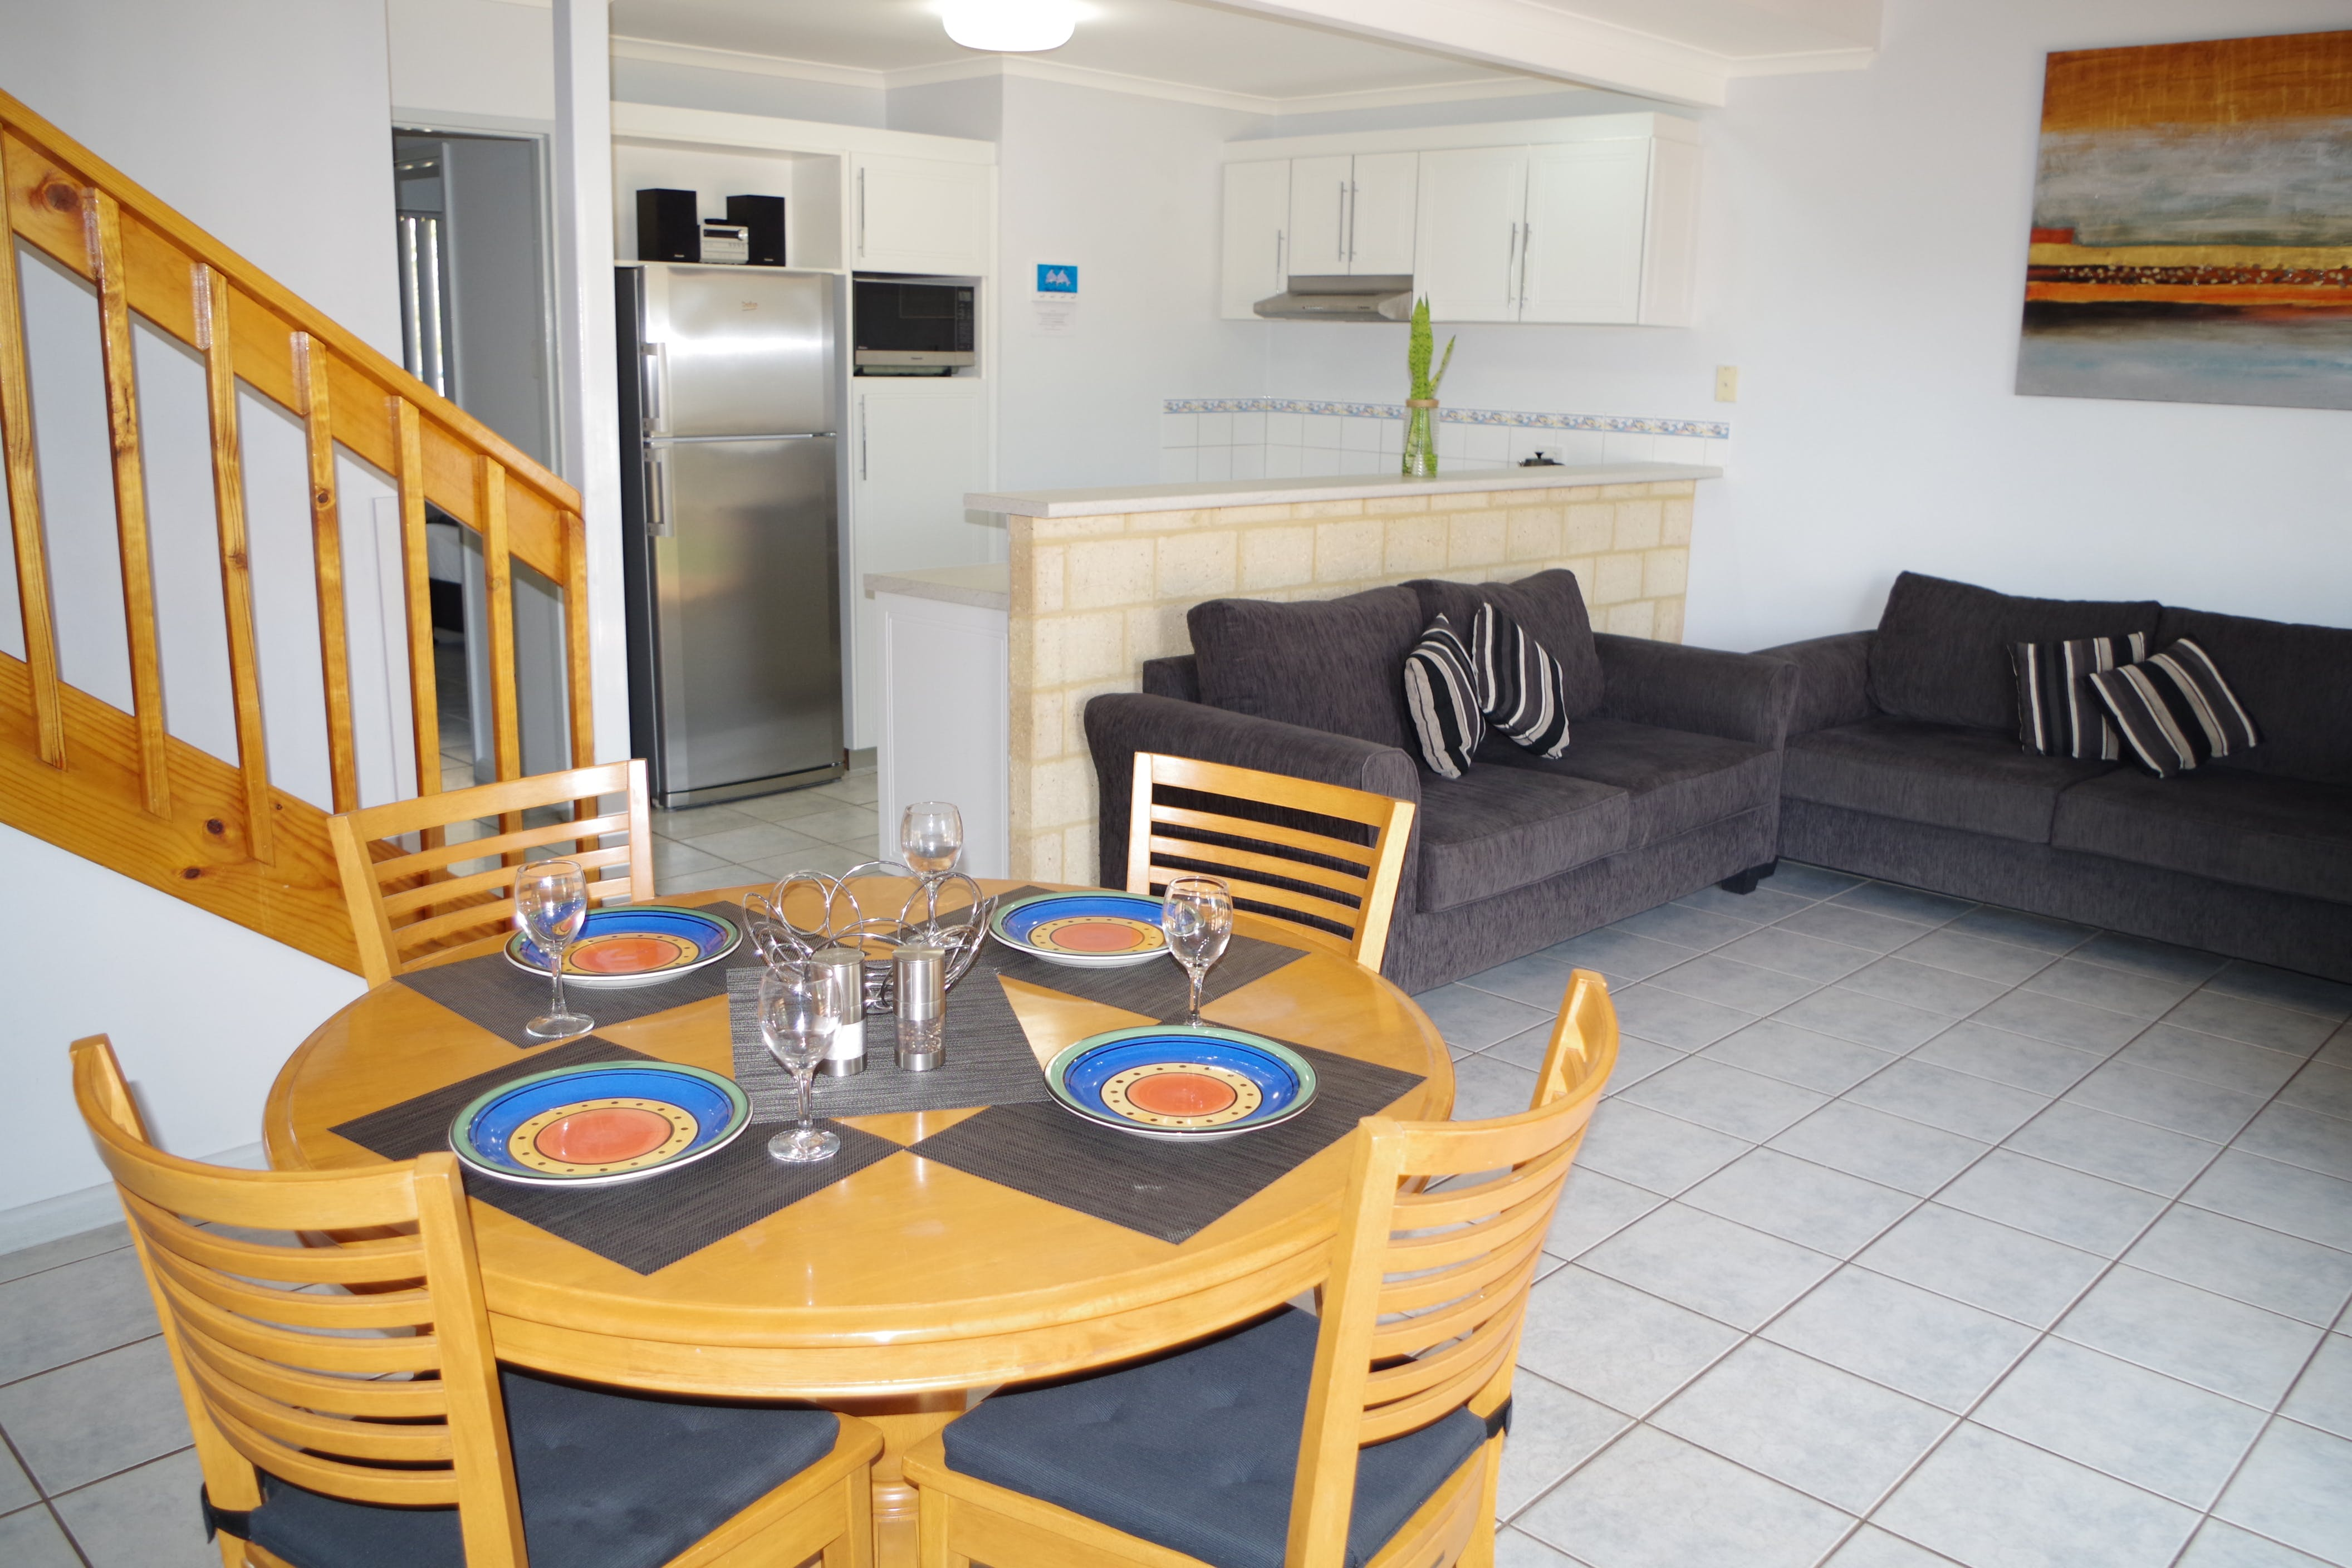 Kalbarri Blue Ocean Villas is your the perfect choice for Kalbarri hotels in Kalbarri WA.